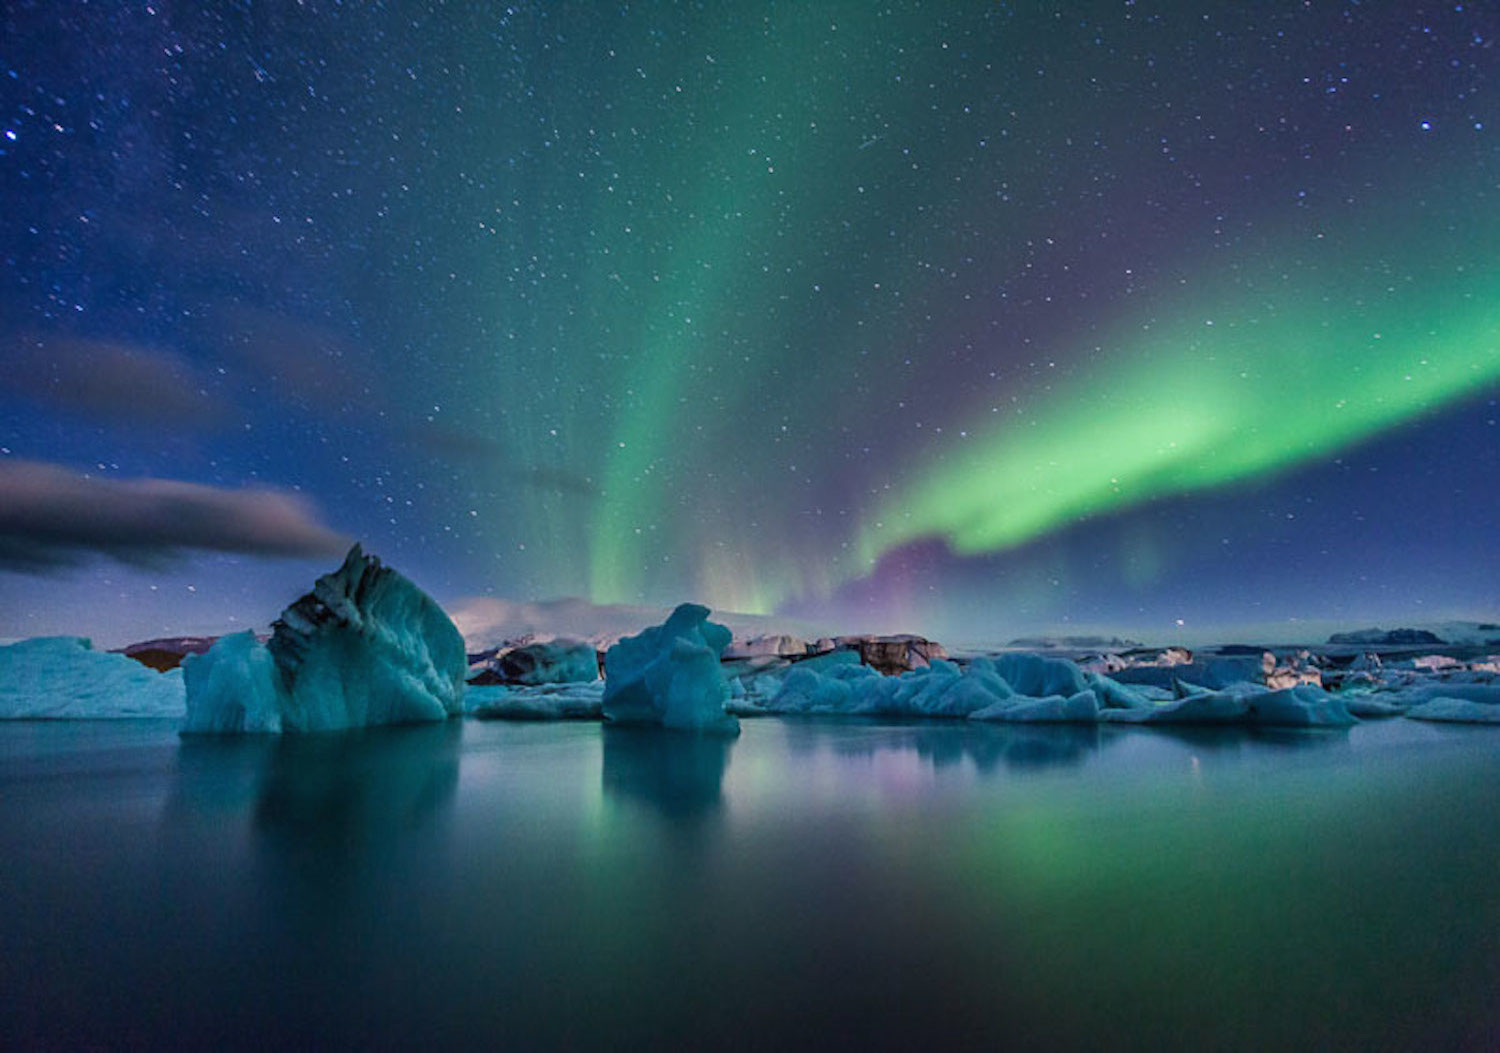 NORTHERN LIGHTS - A dancing, dazzling display of natural light display in the sky.{We sadly we didn't get to see them. I guess not our luck that week, however this sure will make your trip an ultimate trip of a lifetime if you get lucky!}